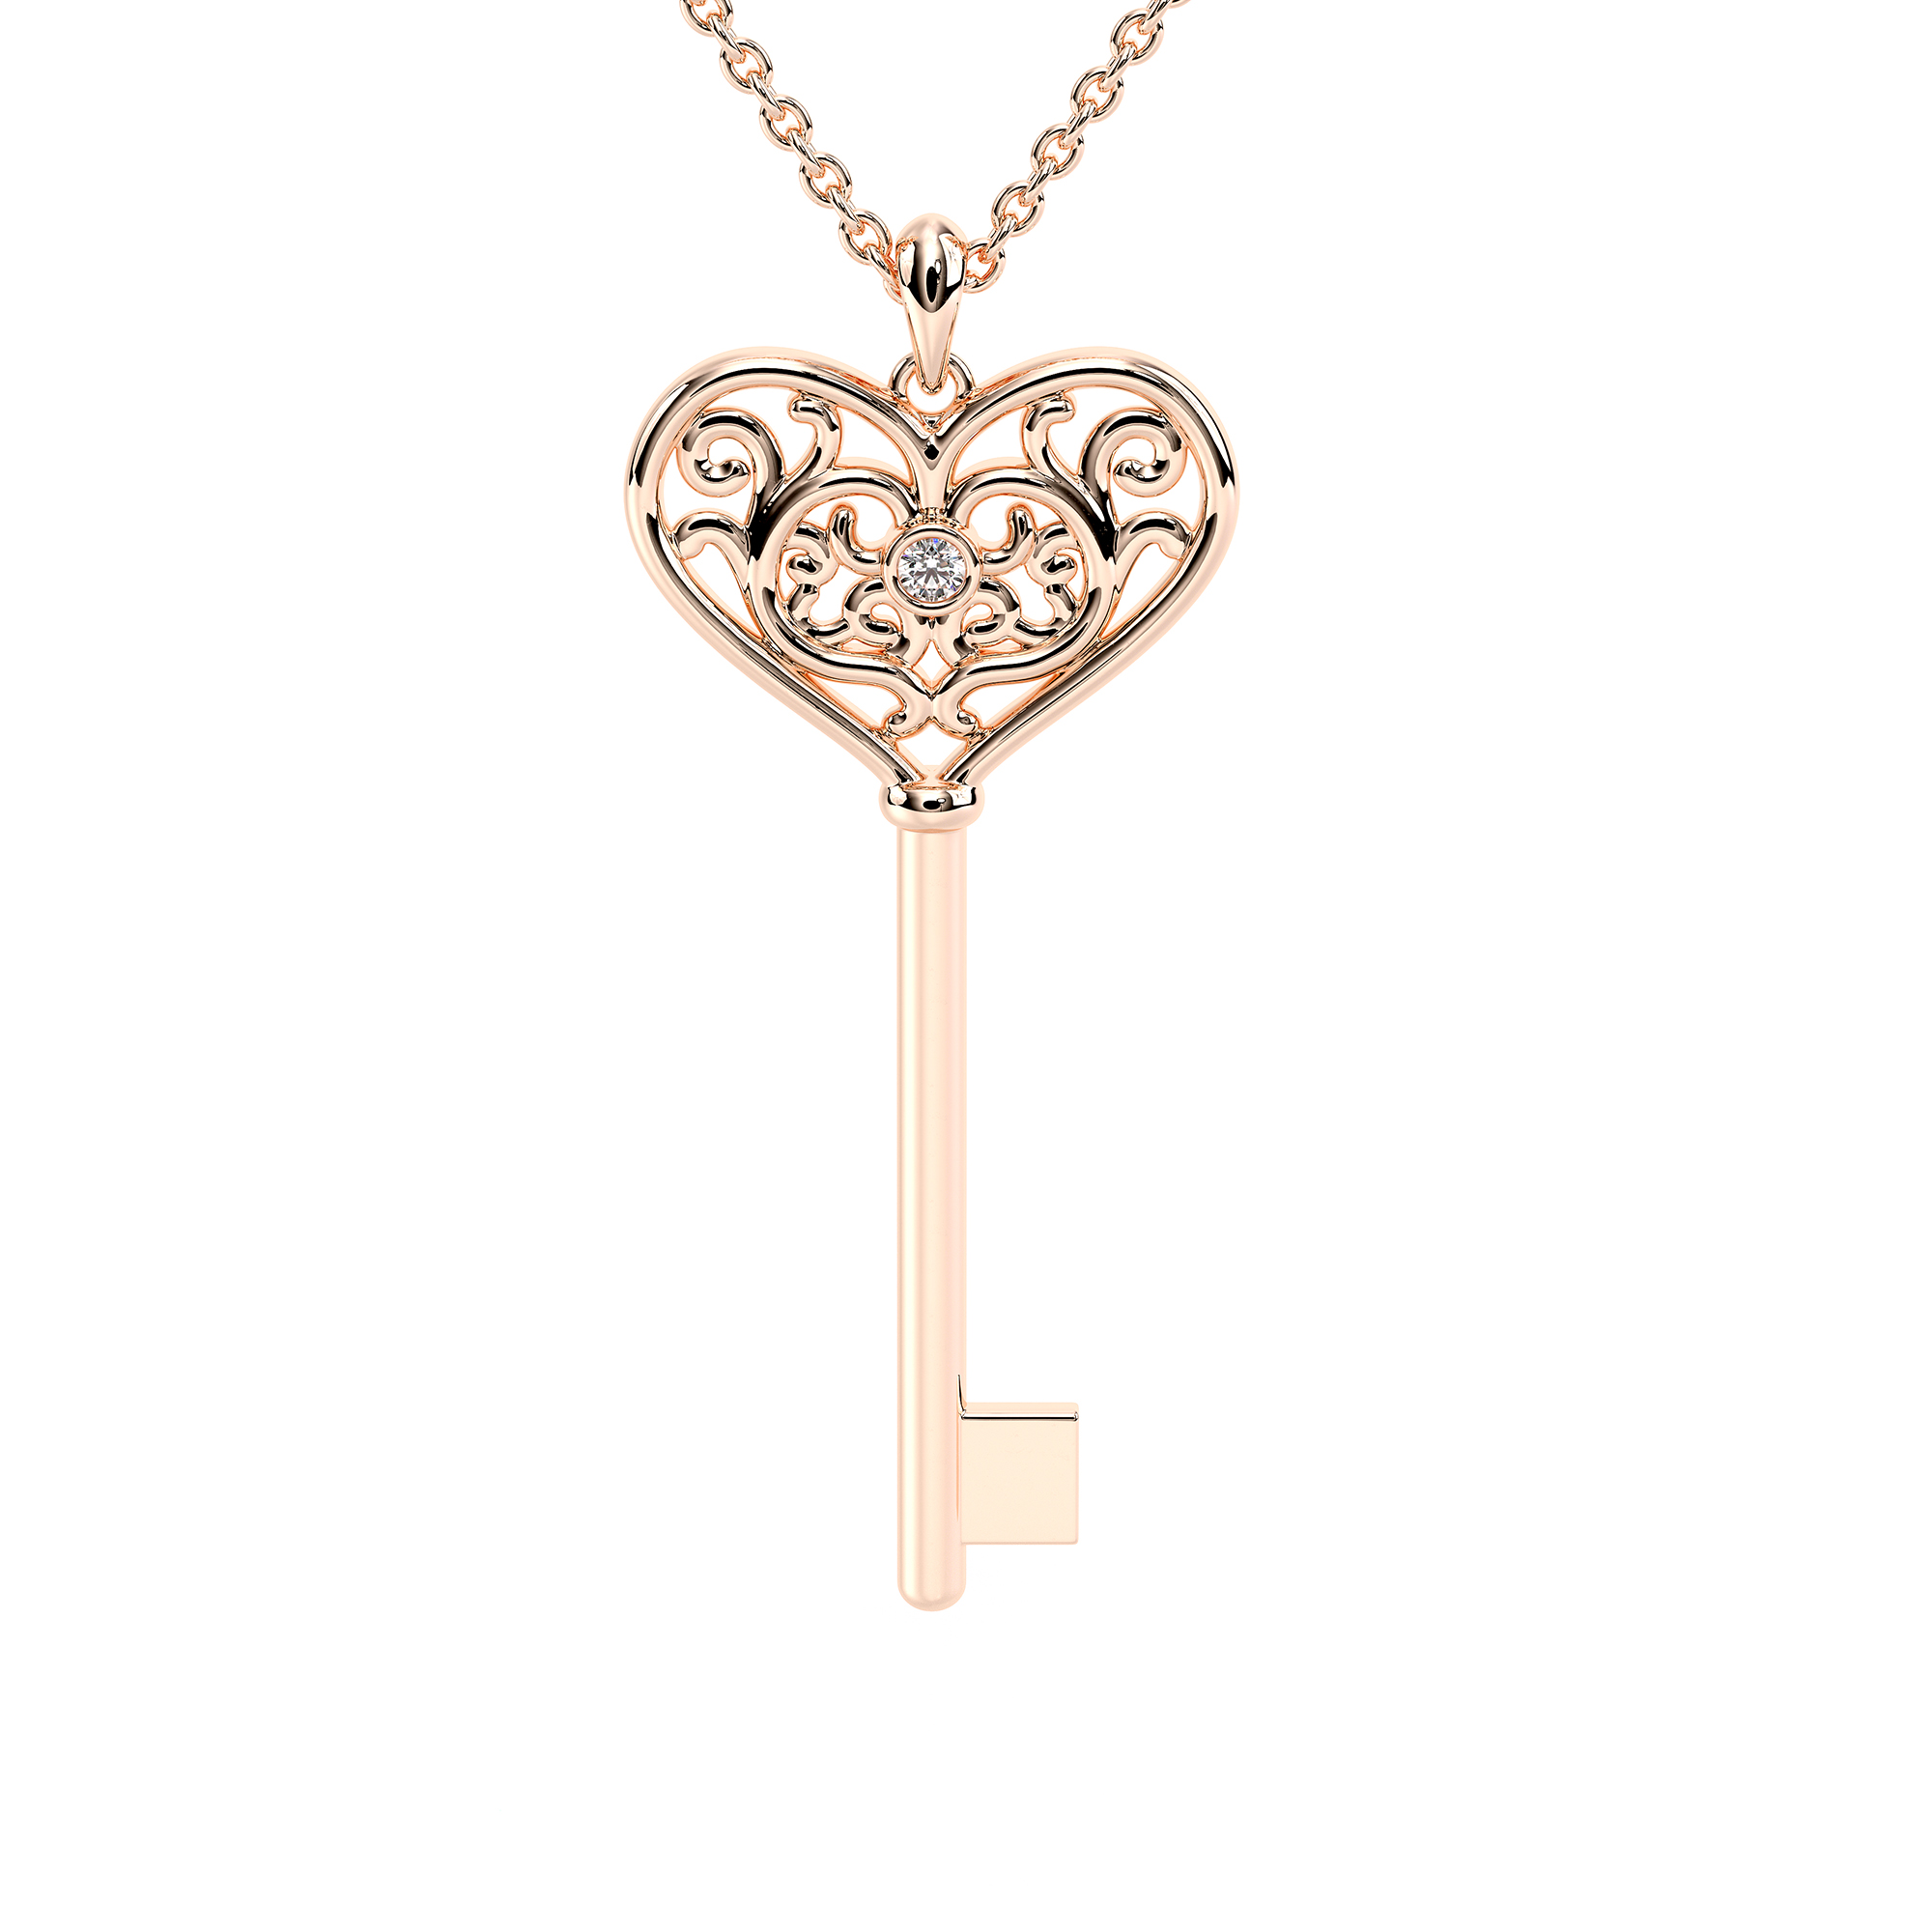 Heart Key Chain Womens Gift Solid Rose Gold Diamond Pendant Necklace Love Pendant